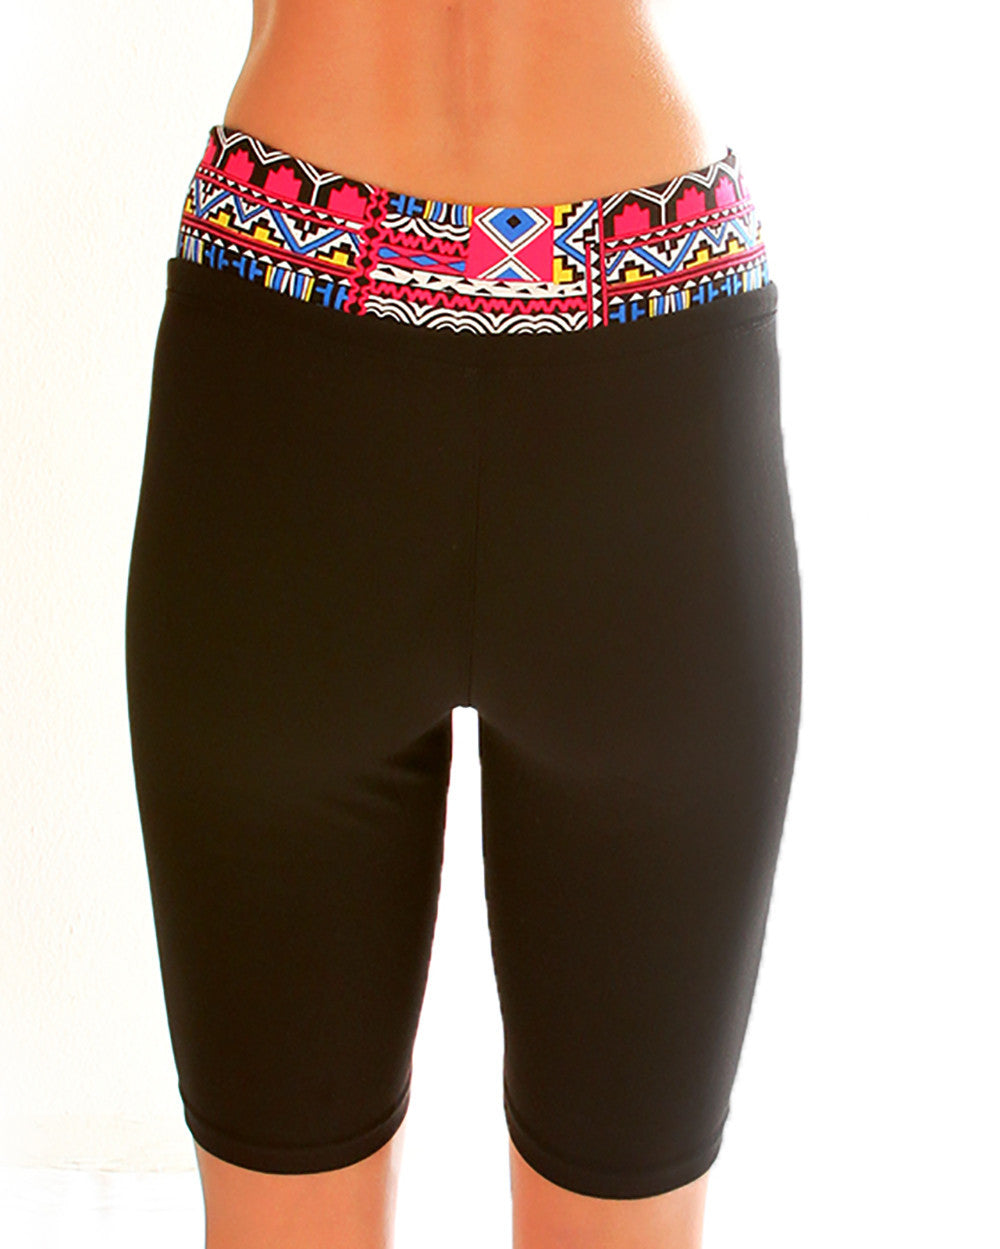 Multi Color Print Lyss Loo Work it Out Active Shorts